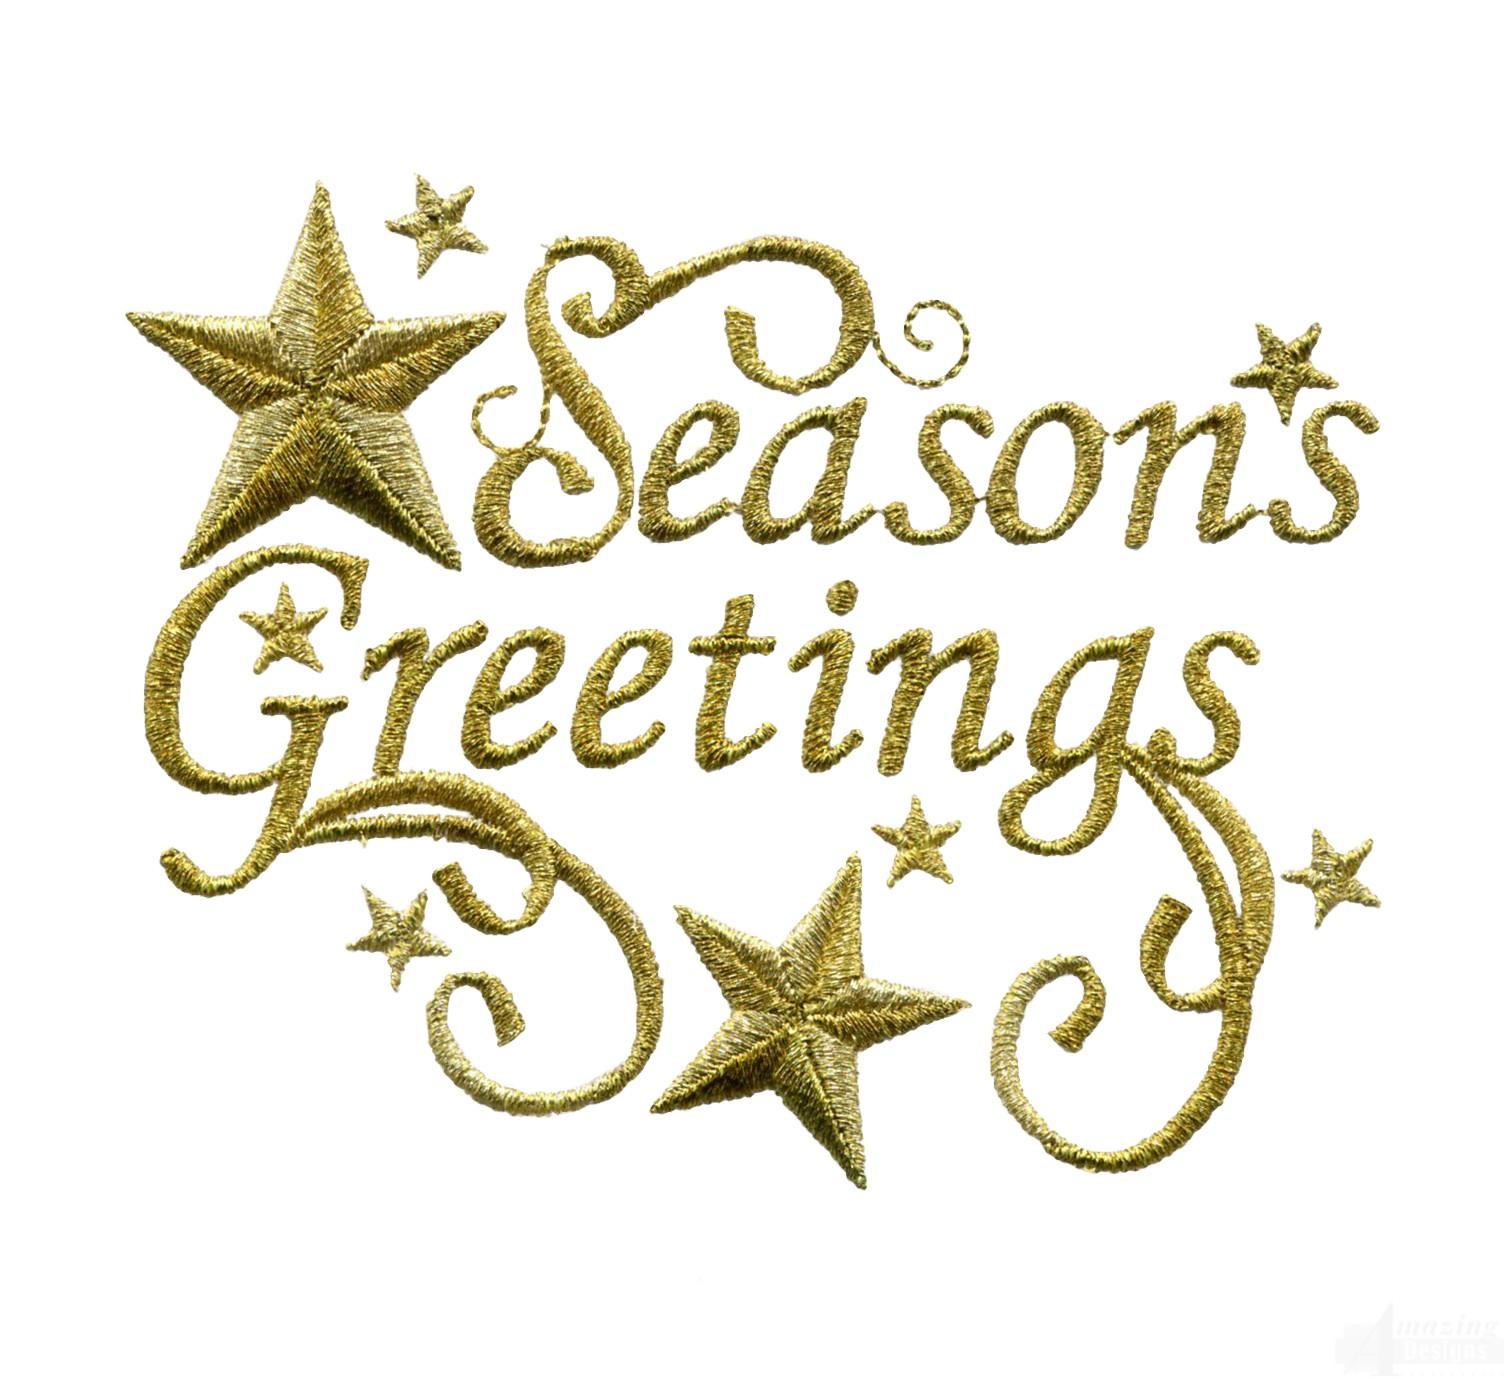 Metallic gold seasons greetings embroidery design m4hsunfo